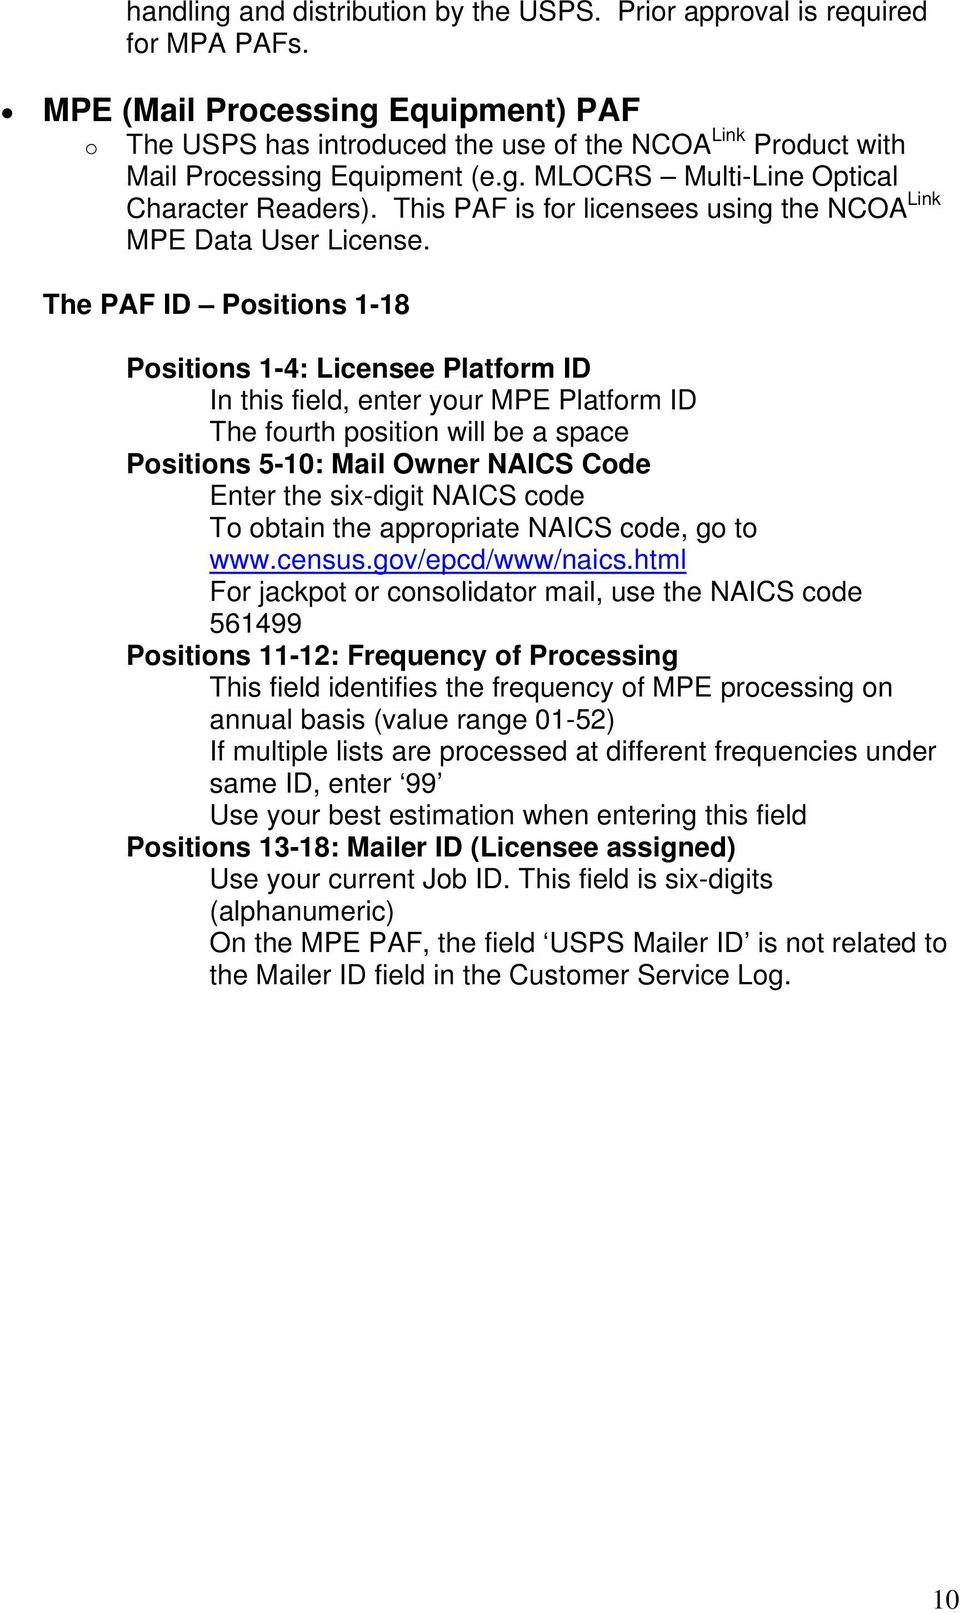 This PAF is for licensees using the NCOA Link MPE Data User License.